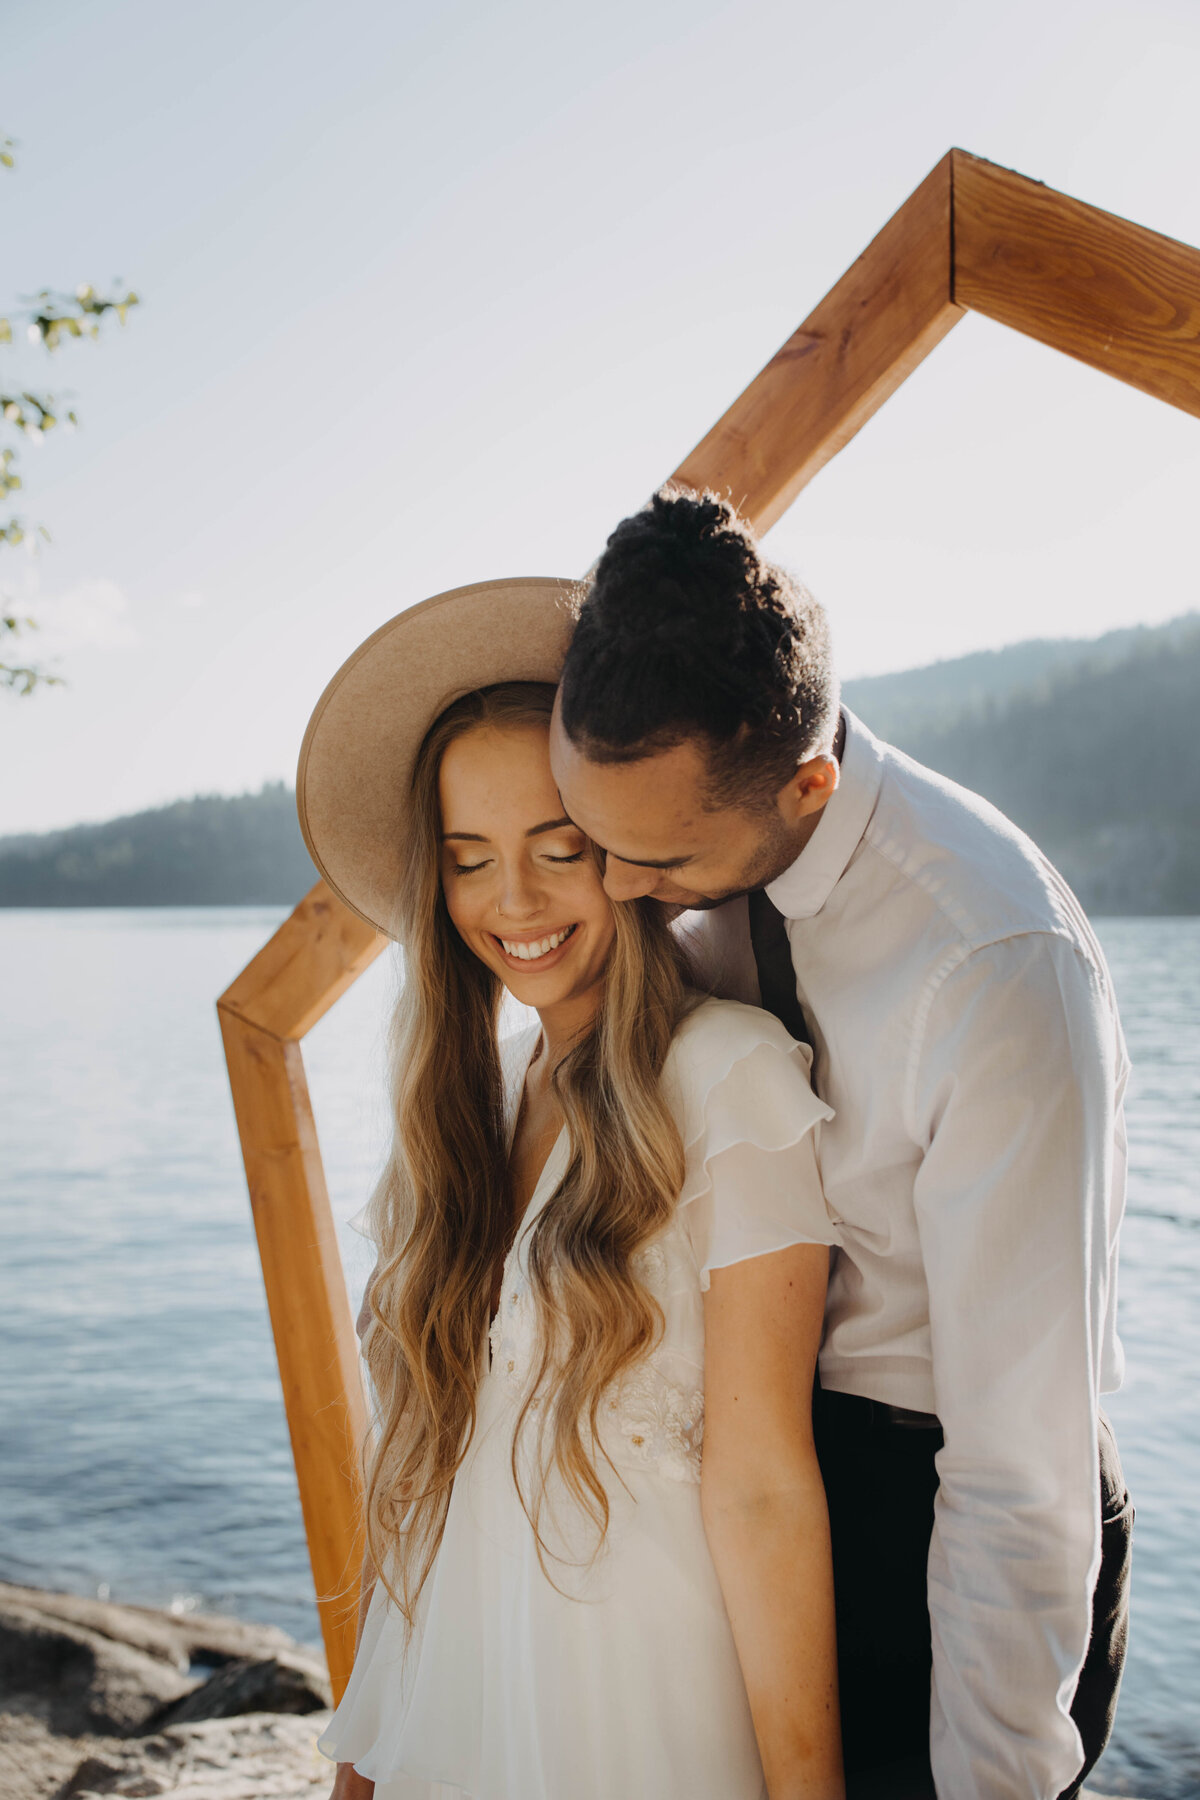 Alex _ Alex-lake elopement-7